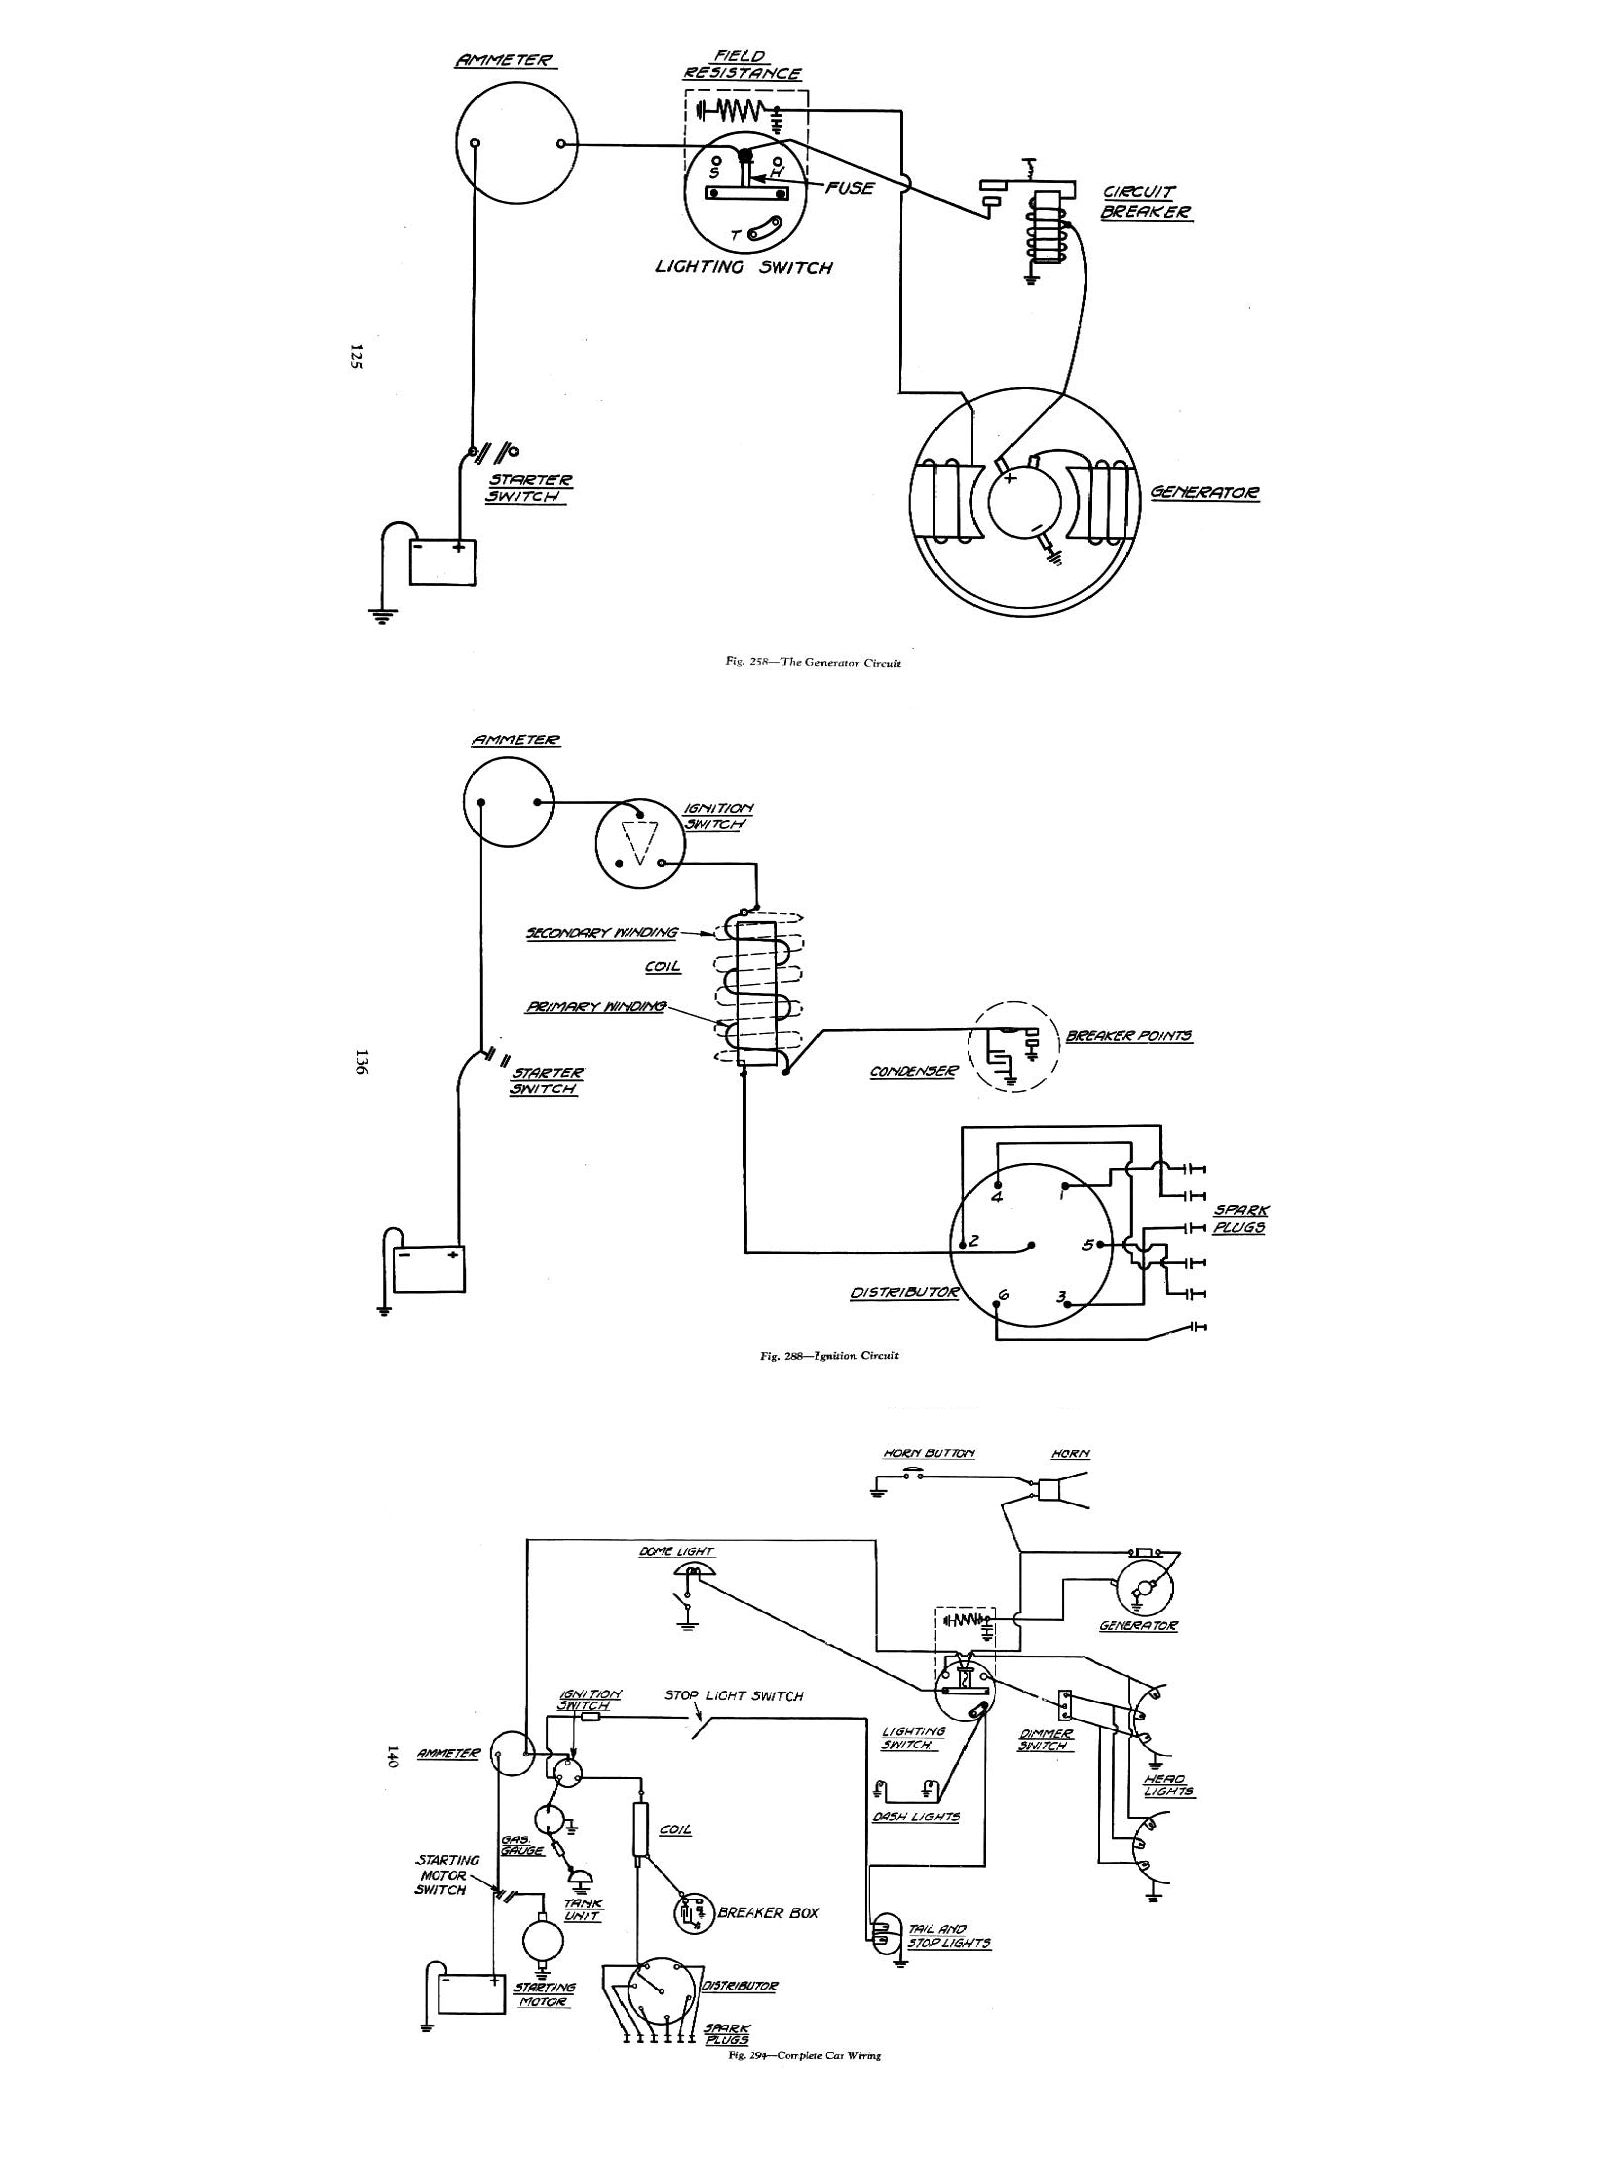 hight resolution of generator and regulator circuit diagram for the 1947 chevrolet chevy wiring diagrams generator and regulator circuit